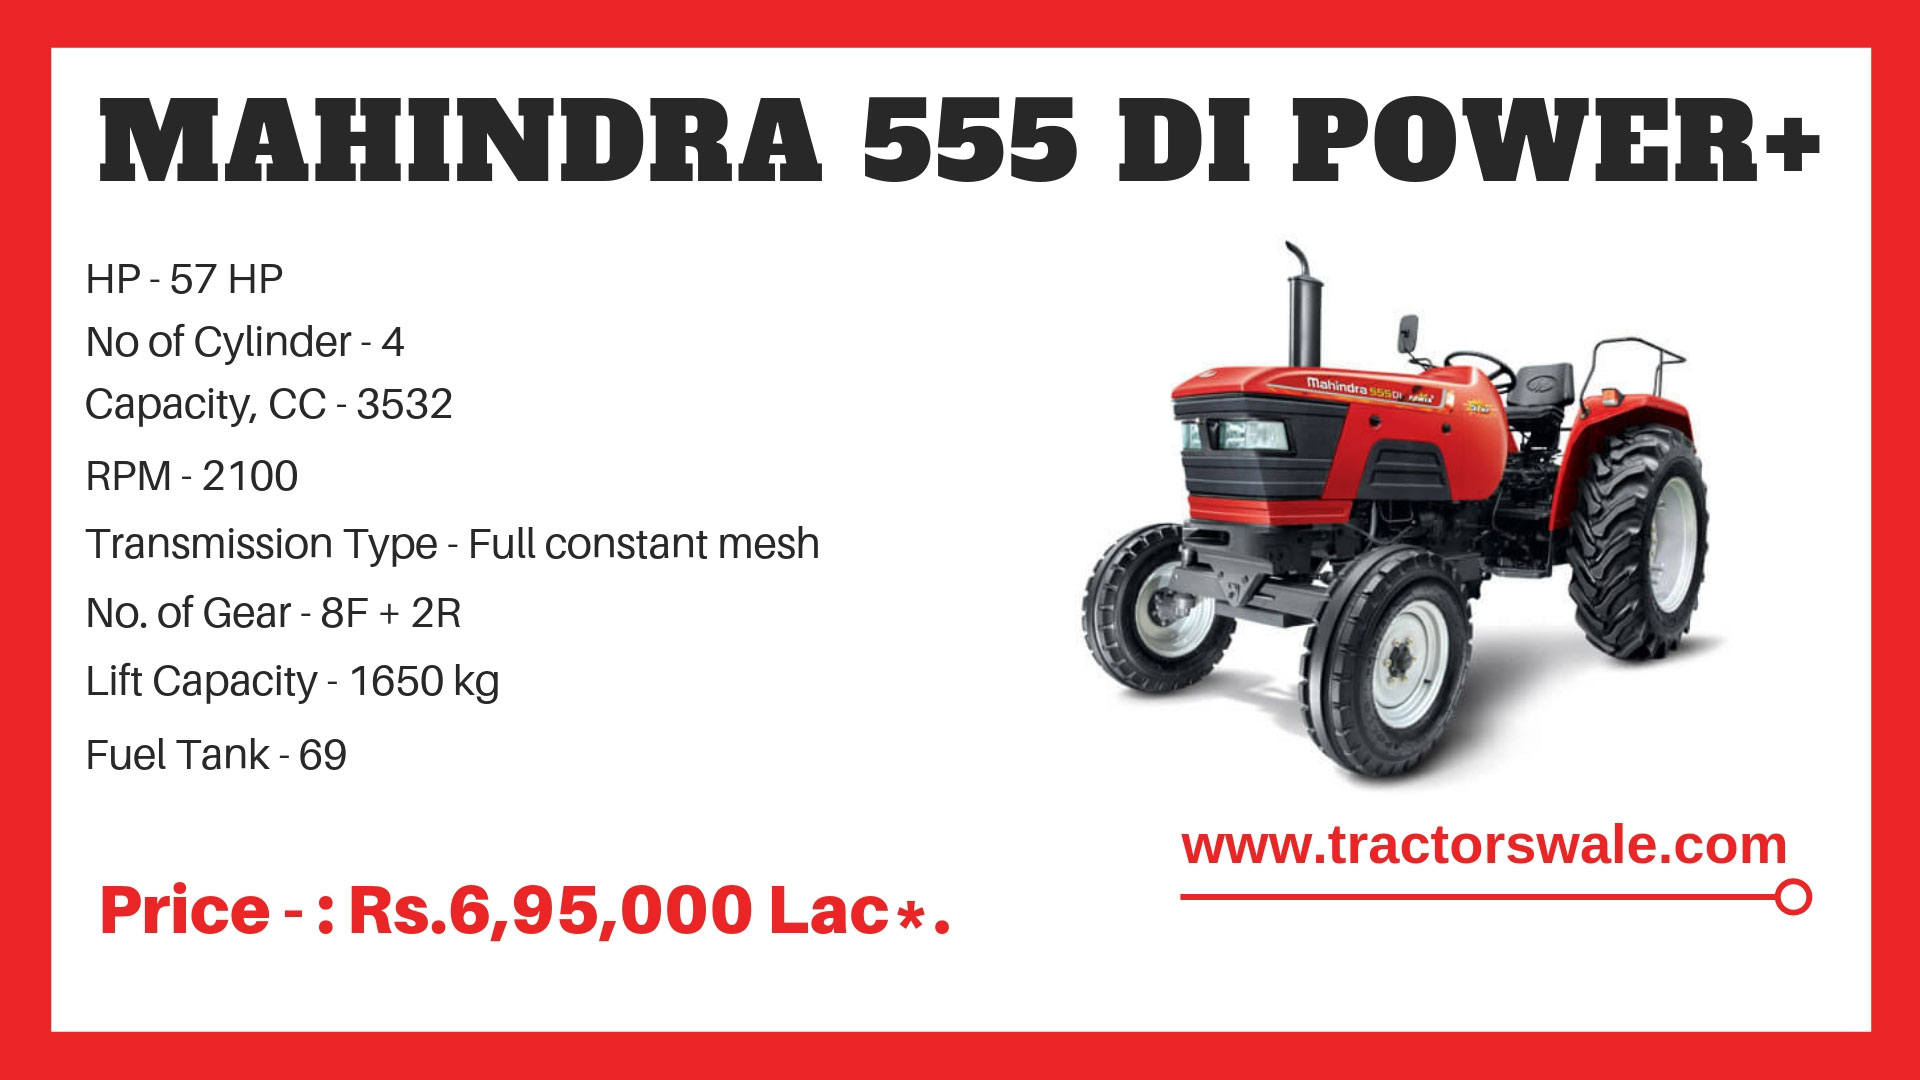 Mahindra-555-Di-Power-Plus-Specifications